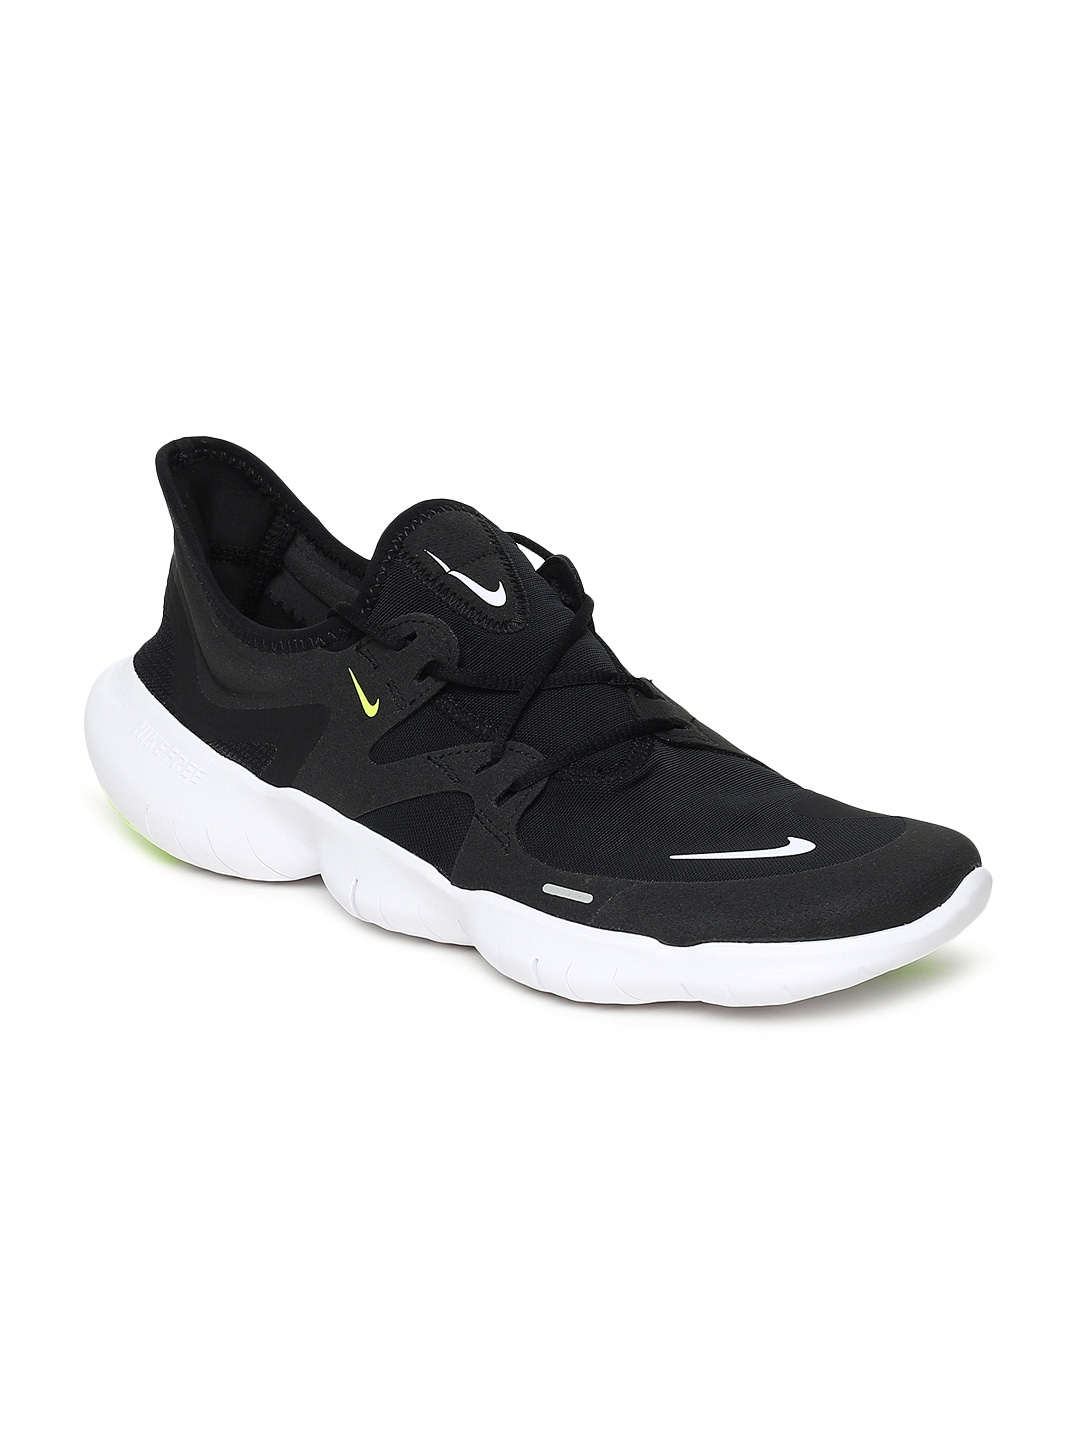 b2902d2df2c0 Nike Running Shoes - Buy Nike Running Shoes Online